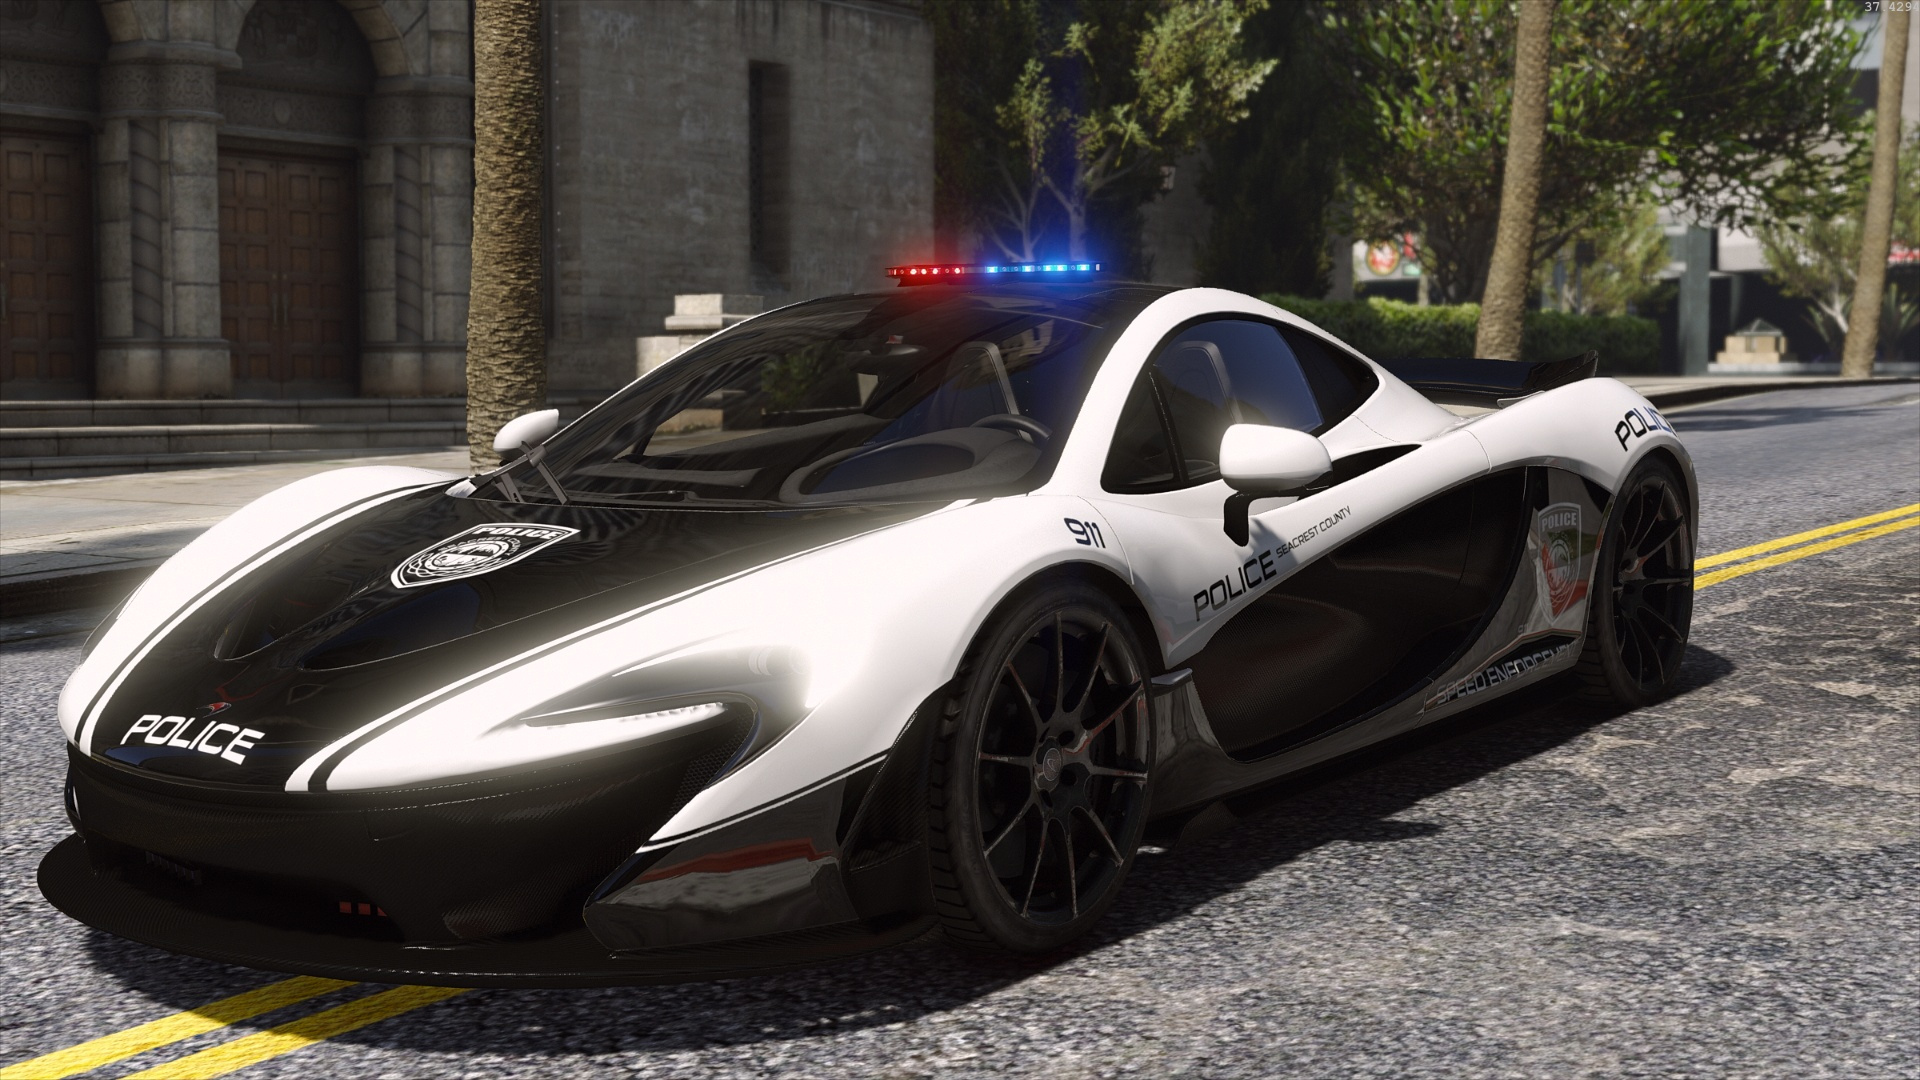 how to get police car in gta 5